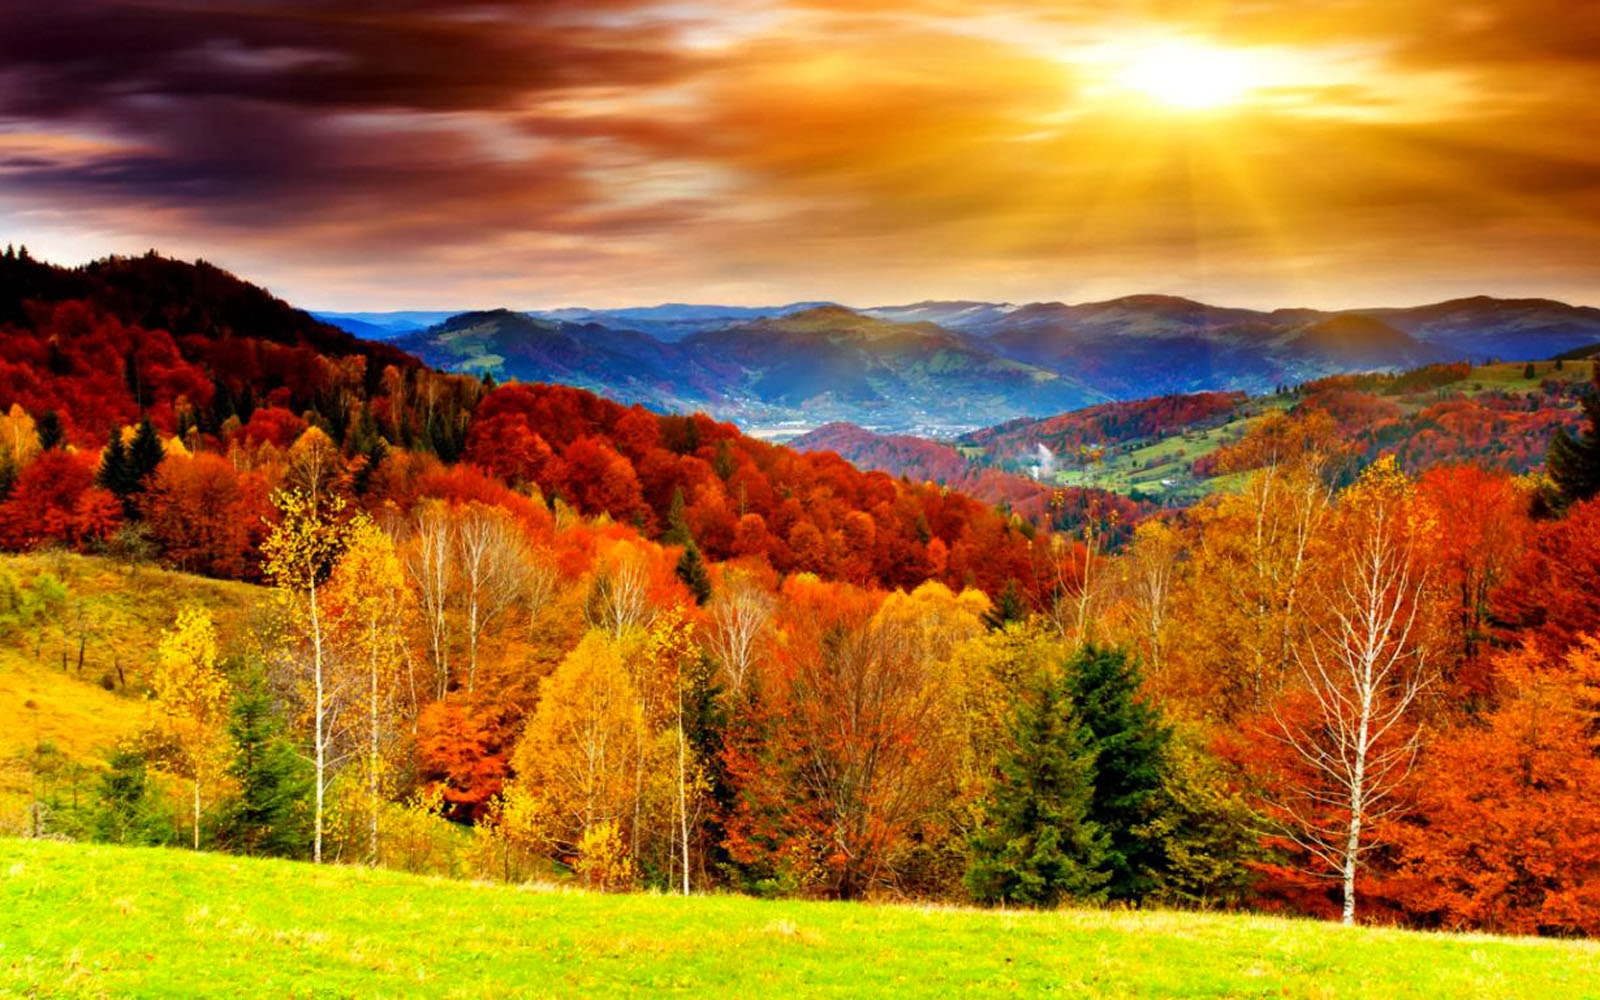 Art Pictures: Autumn Scenery Desktop Wallpapers